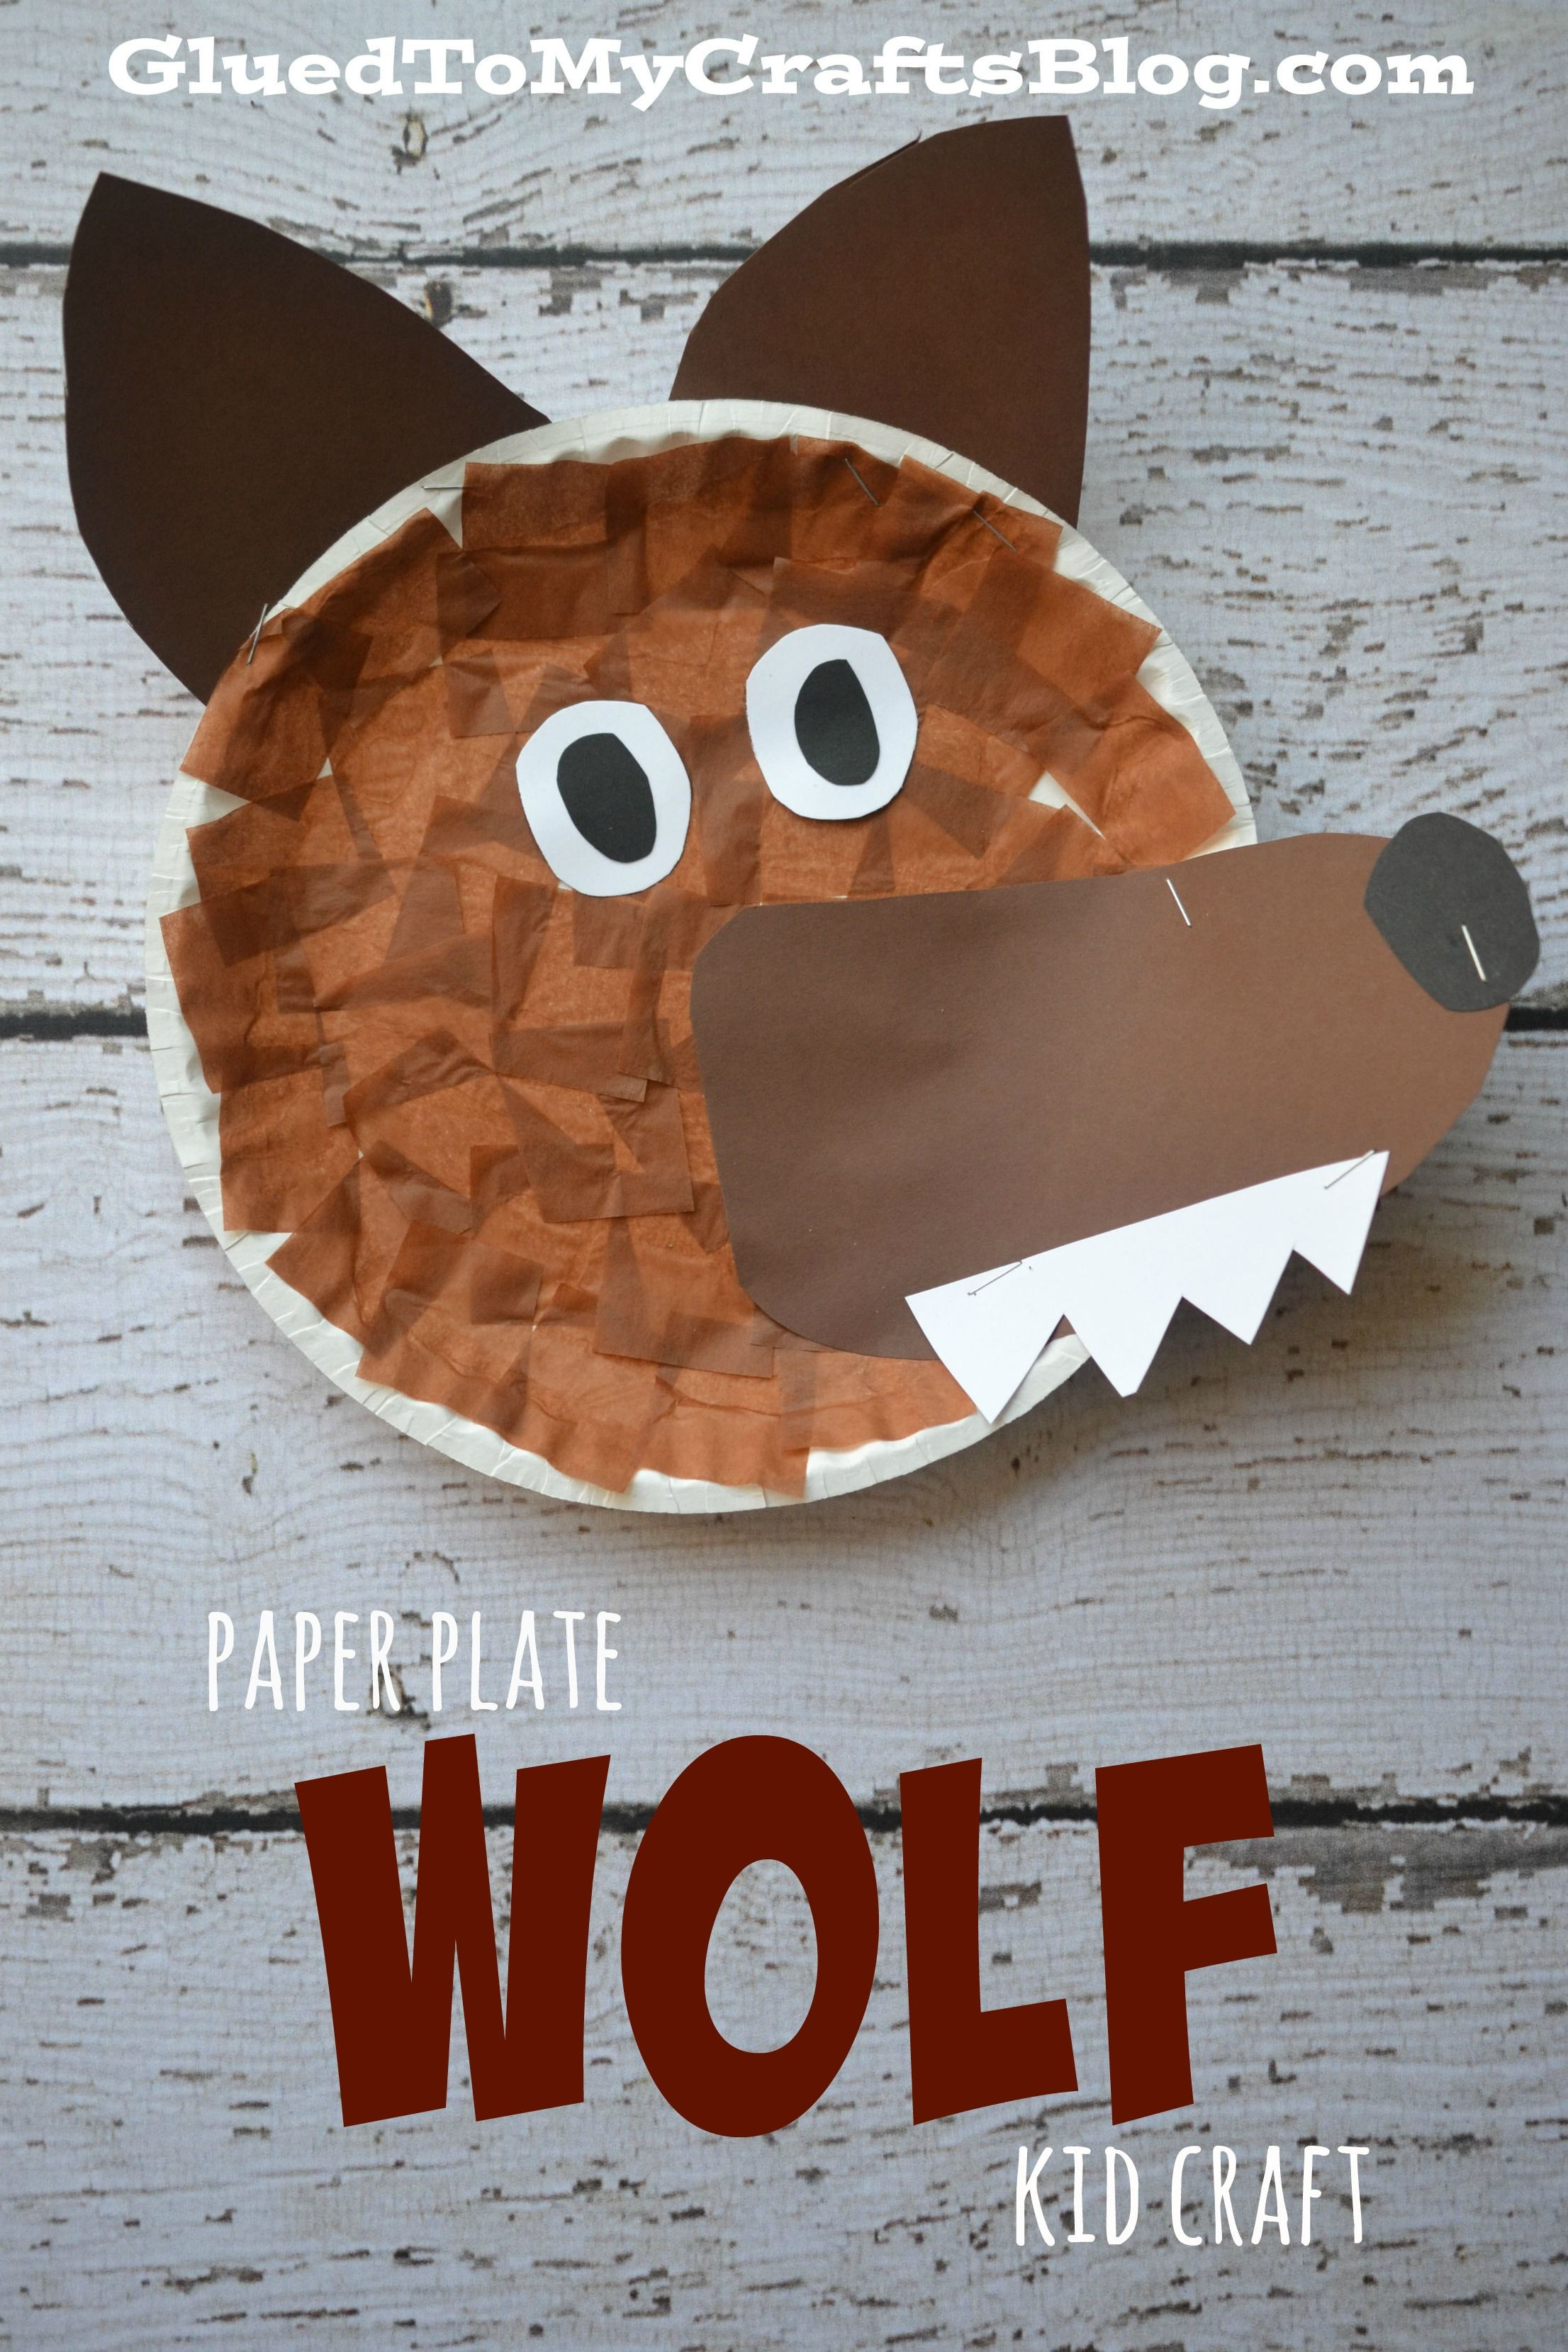 Best ideas about Arts And Crafts For Little Kids . Save or Pin Paper Plate Wolf Kid Craft Now.